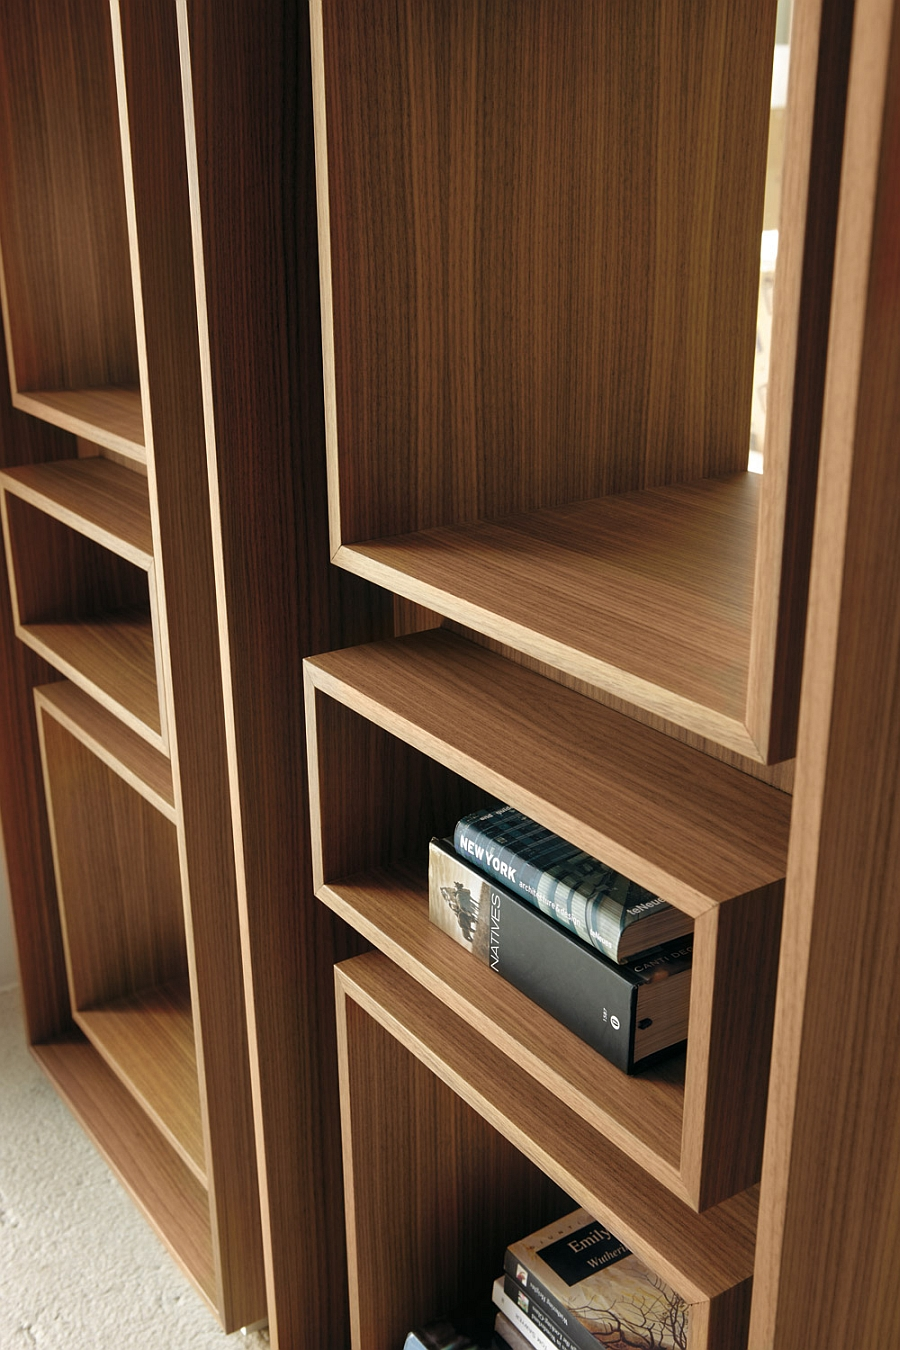 A closer look at the Fancy bookshelves